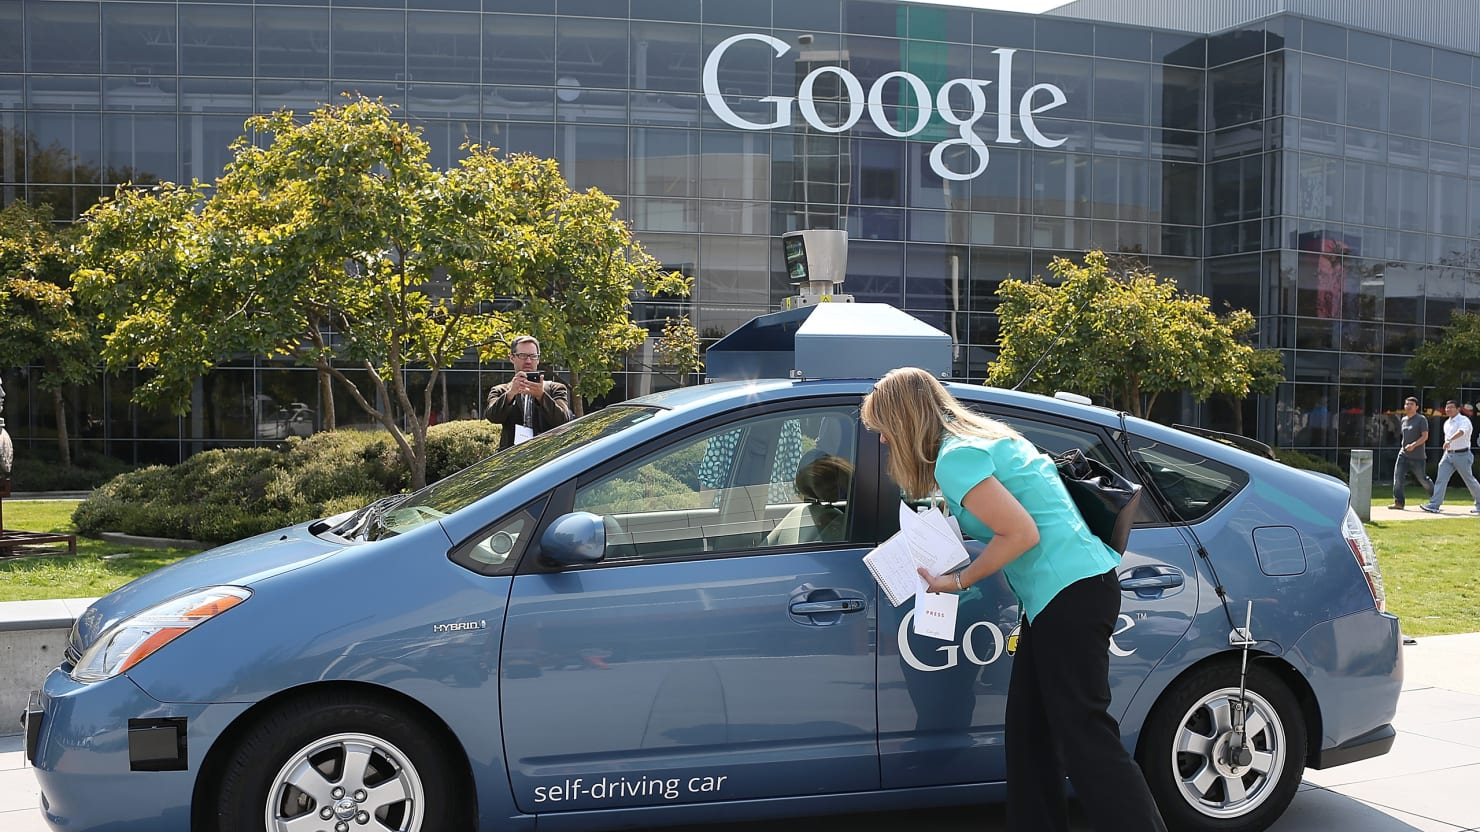 Google Audi Toyota And The Brave New World Of Driverless Cars - Audi driverless car